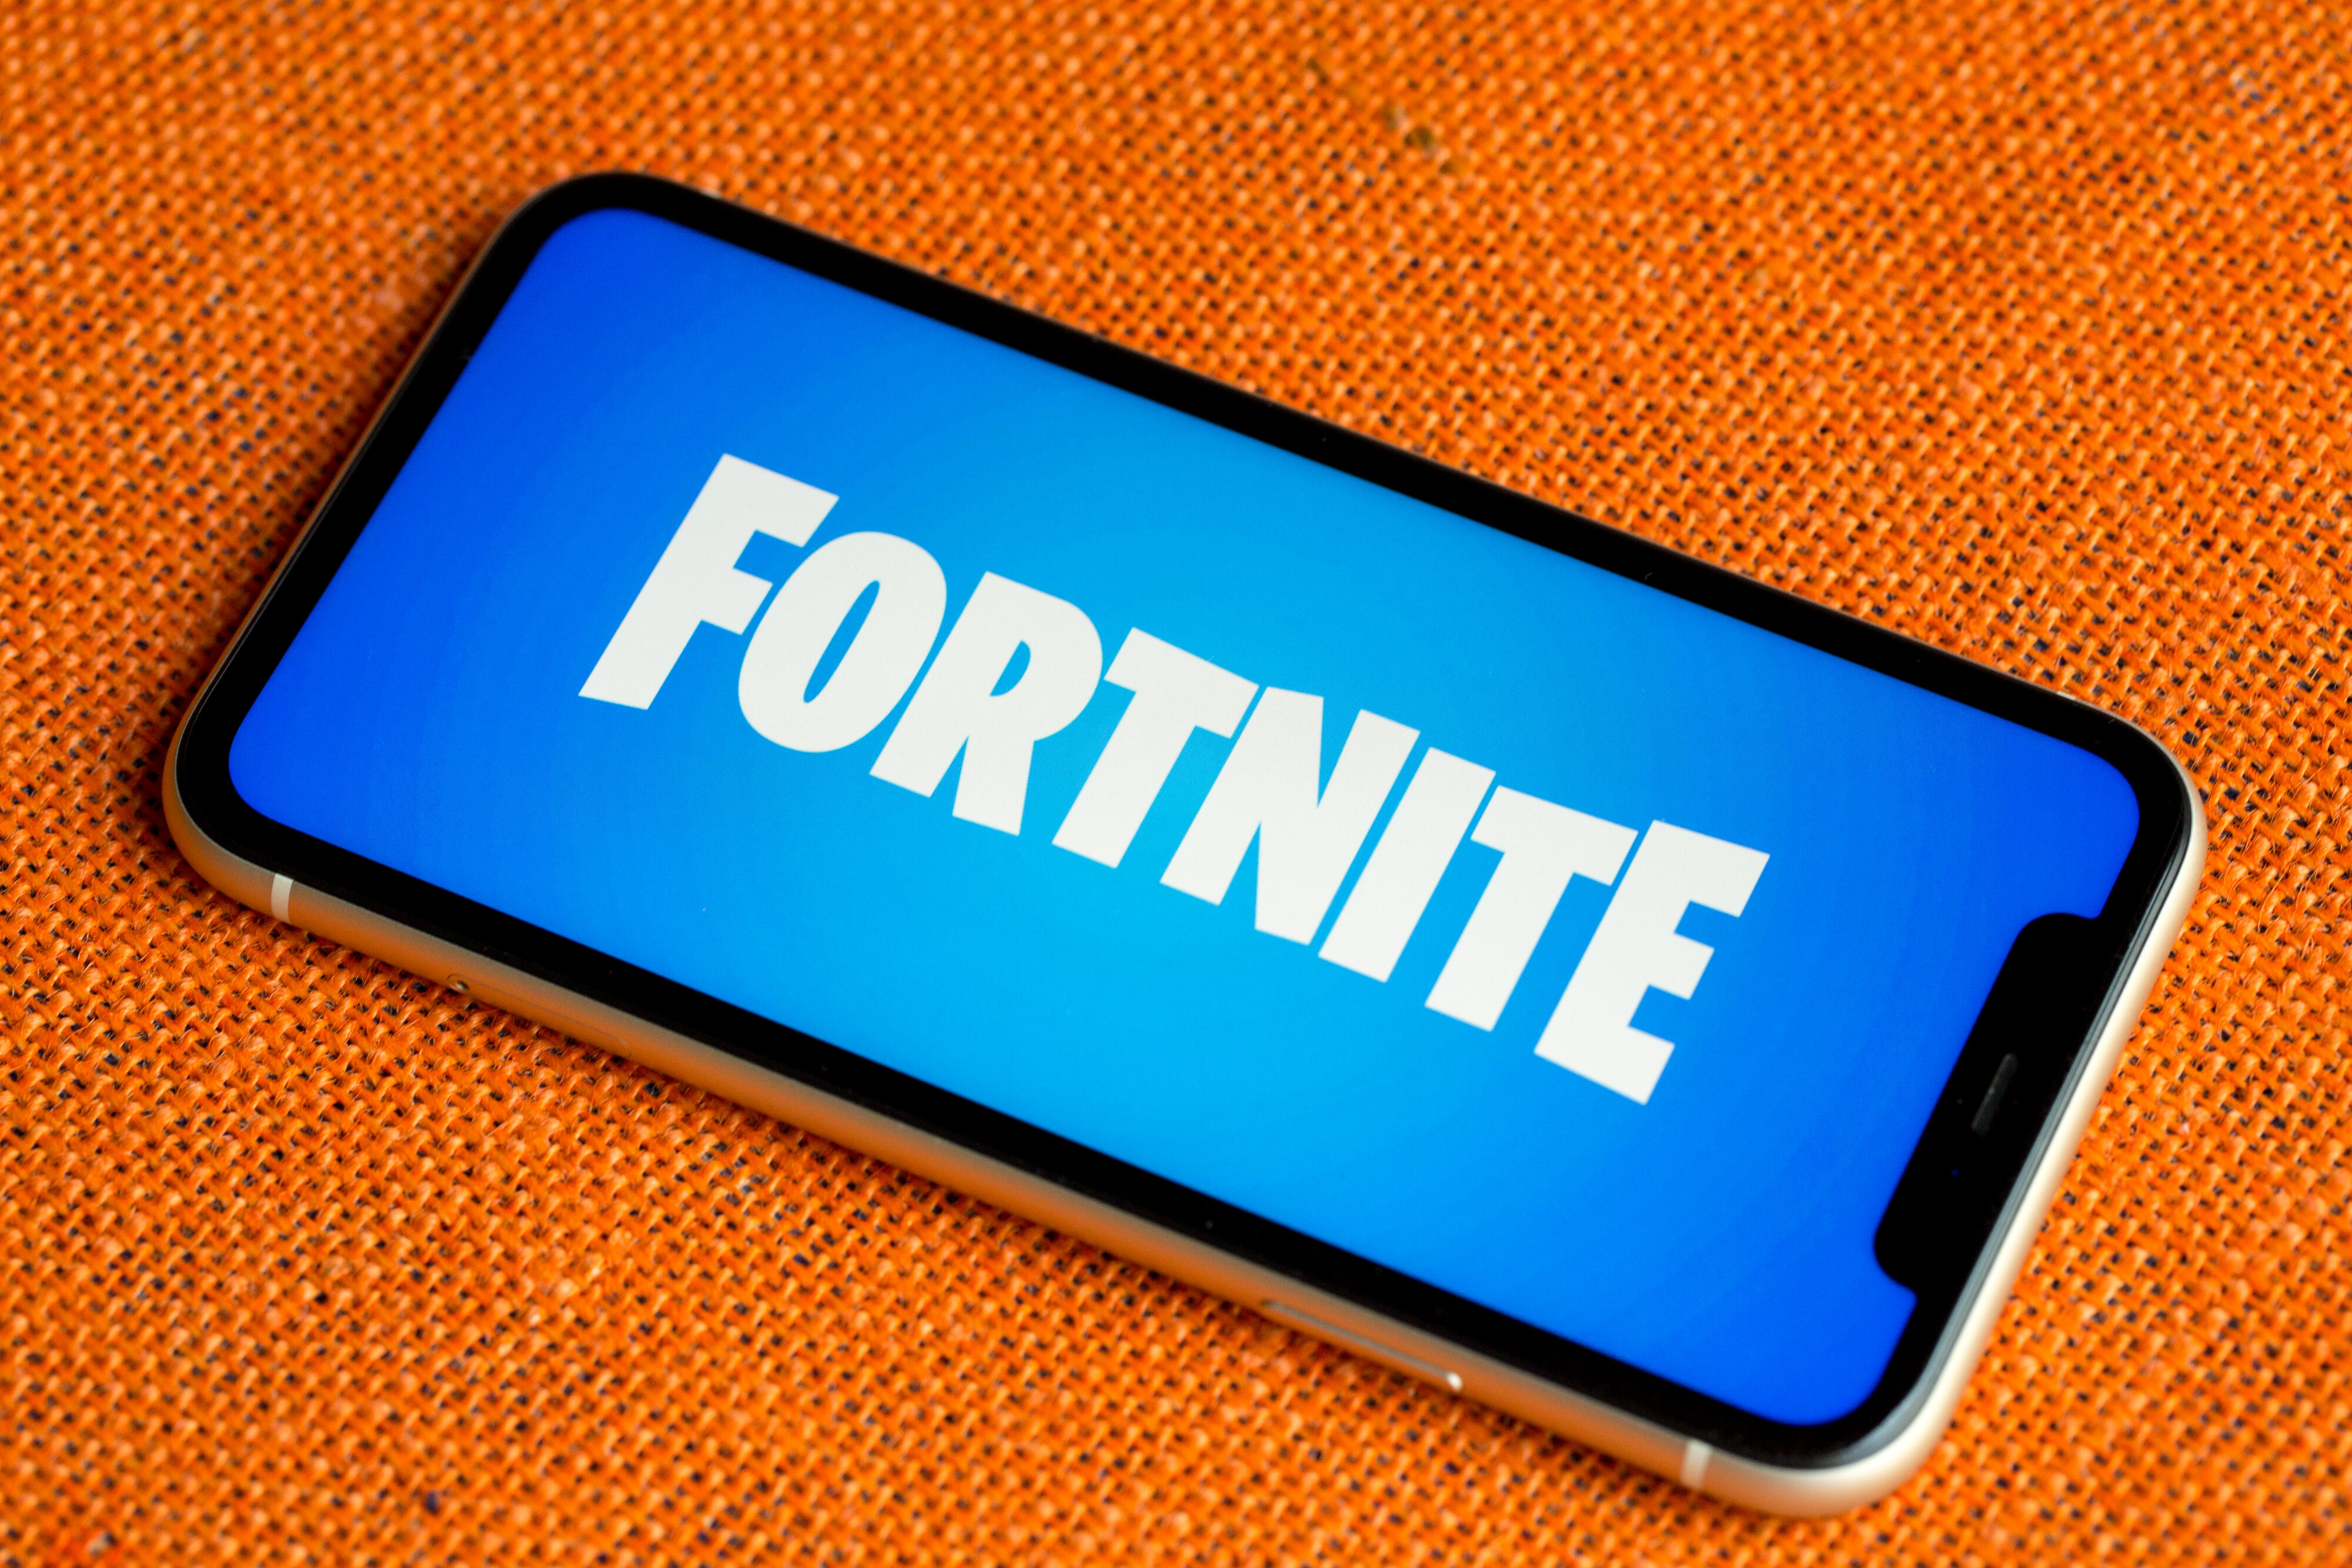 Apple says Epic's suit is really an effort to revive 'flagging interest' in Fortnite thumbnail